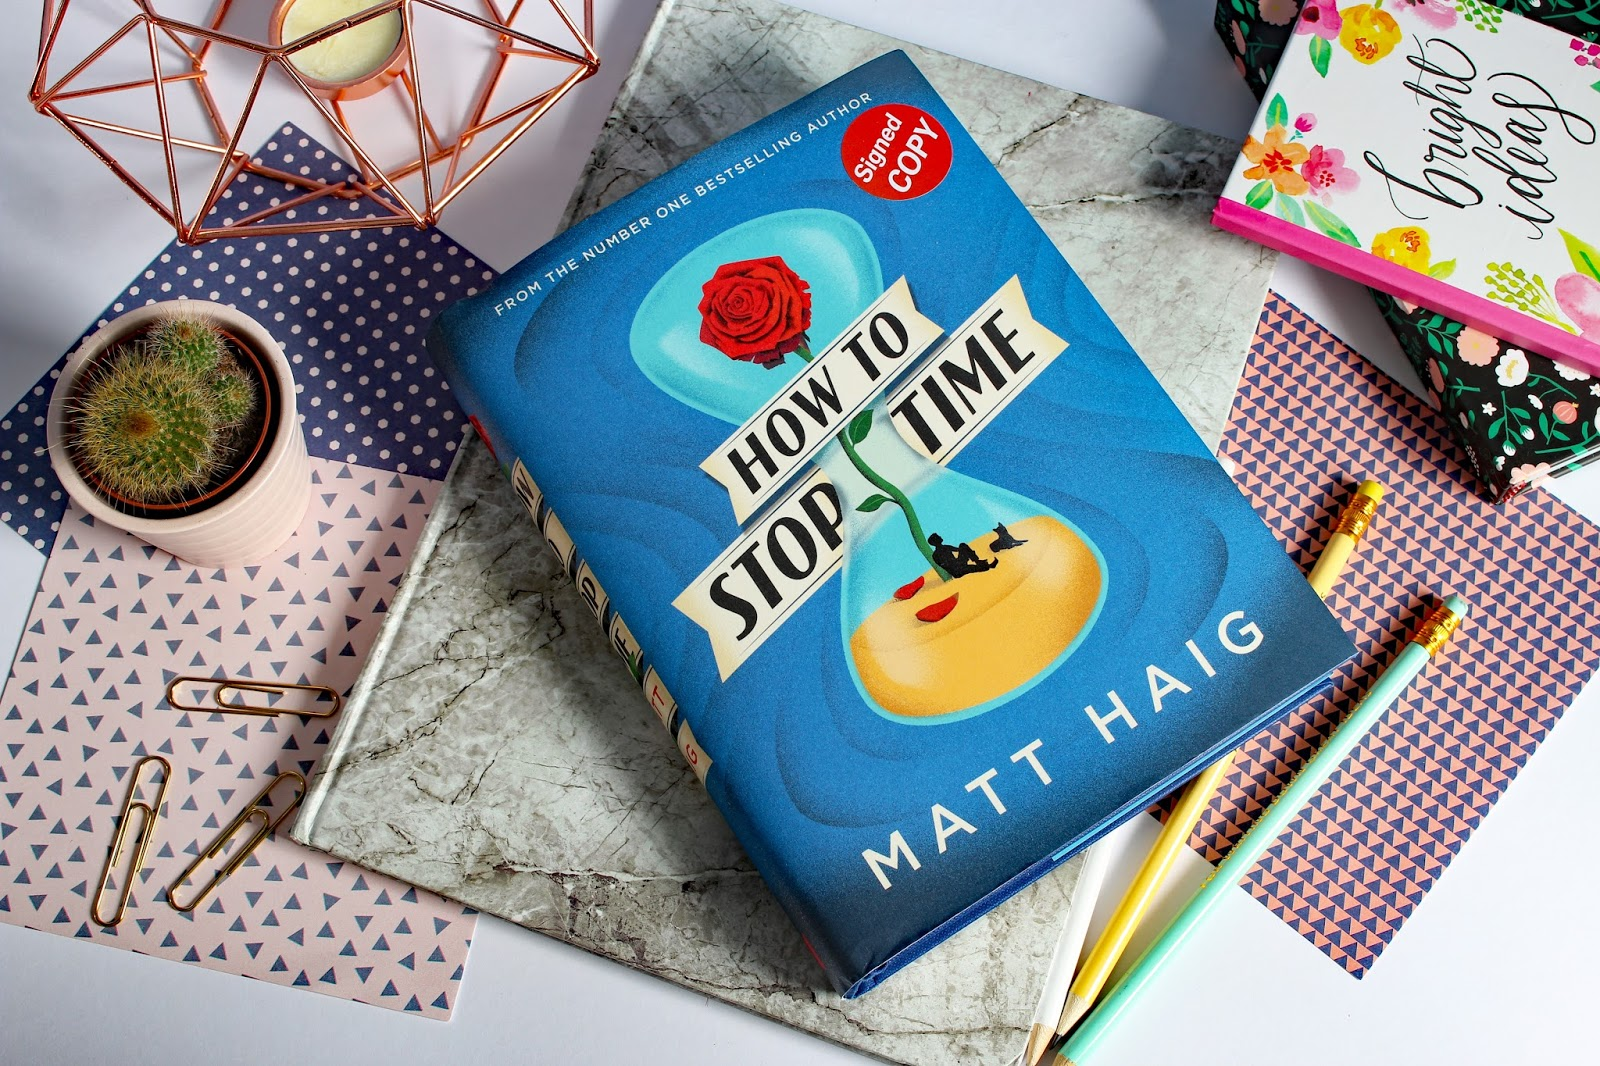 Mental Health Favourites (August 2017) How to stop time review book hardback Matt Haig